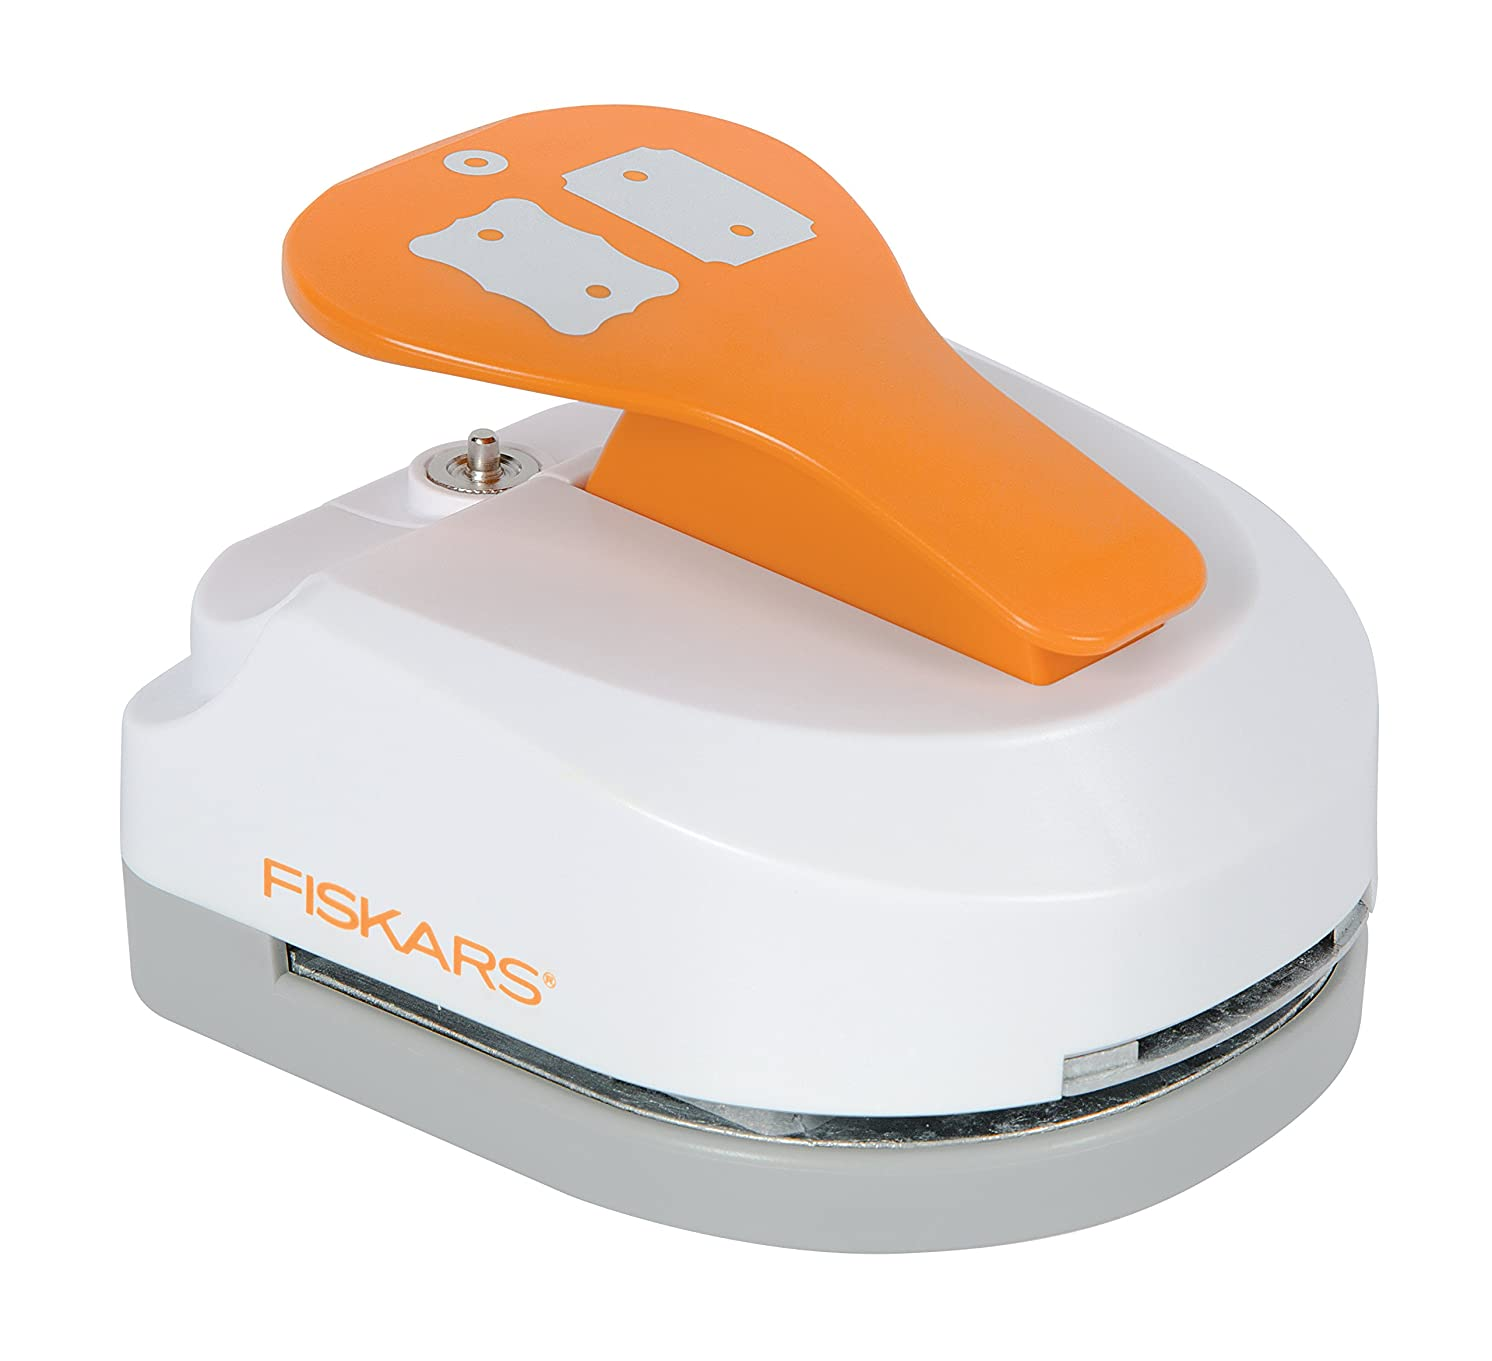 Fiskars 197690-1001 Double Tag Maker with Built-in Eyelet, Ticket and Curly, Orange/White